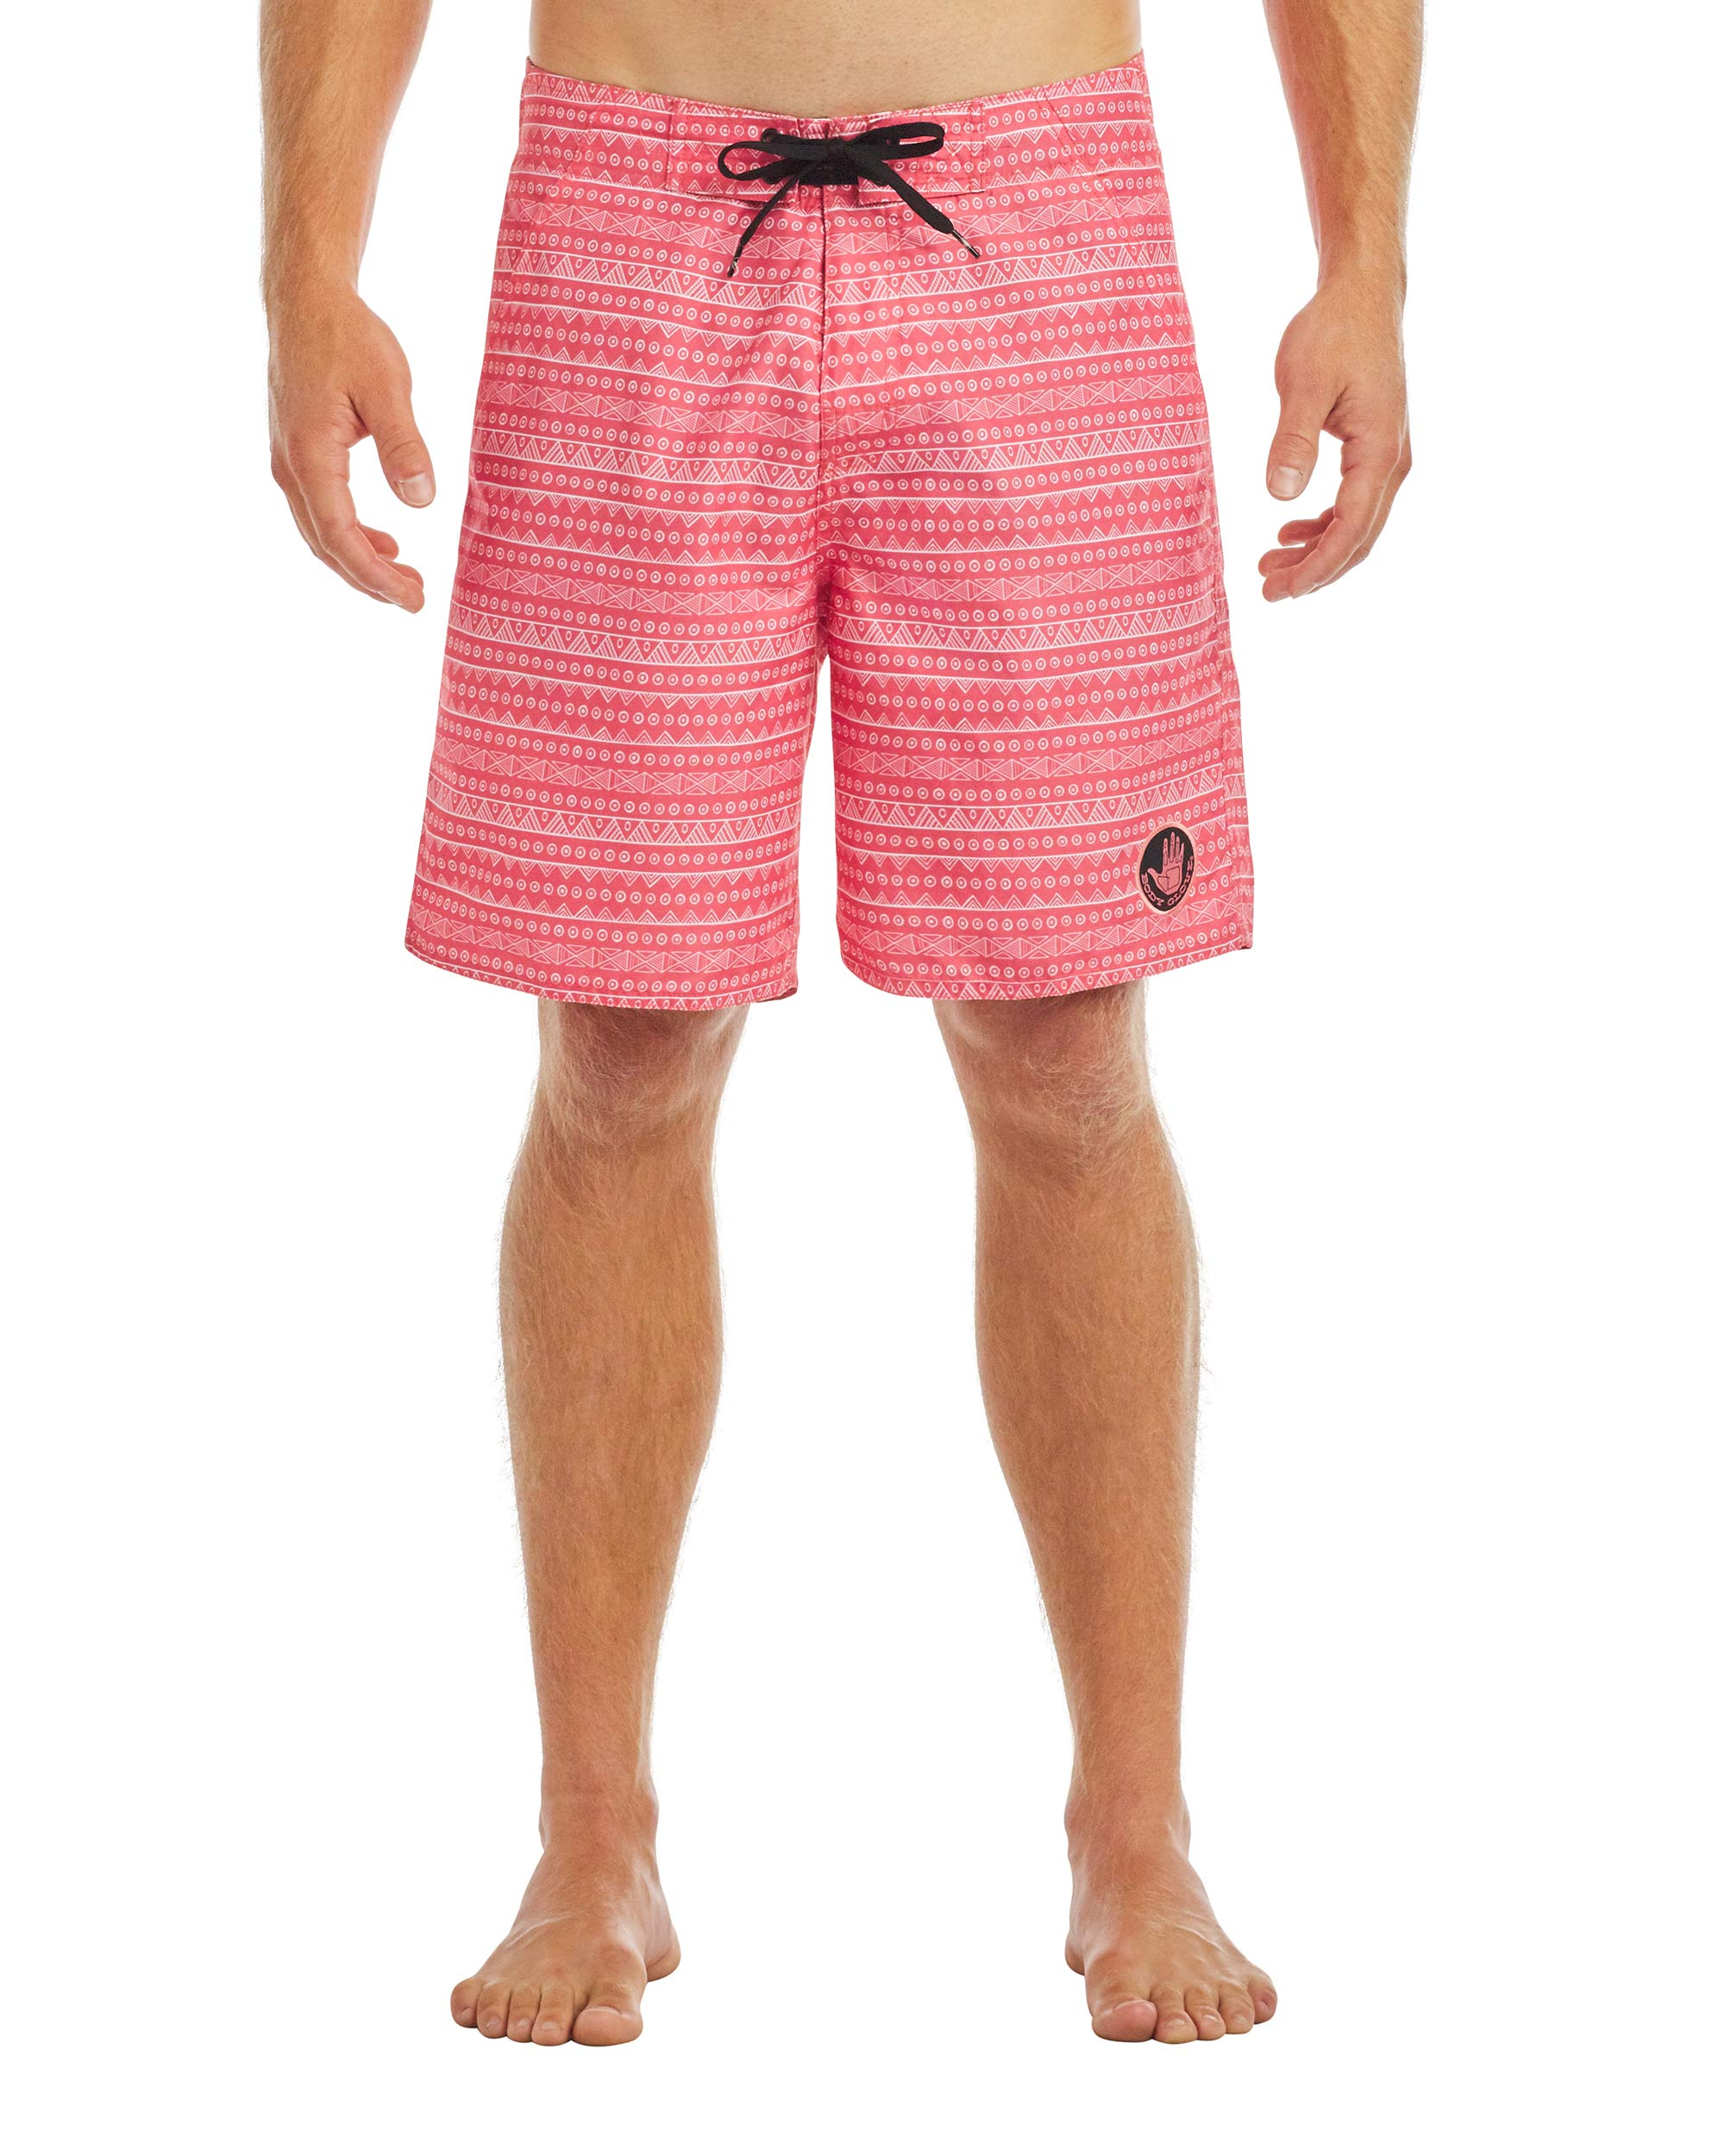 Men's Relaxo 19-Inch E-Board Swim Short - Dusty Coral